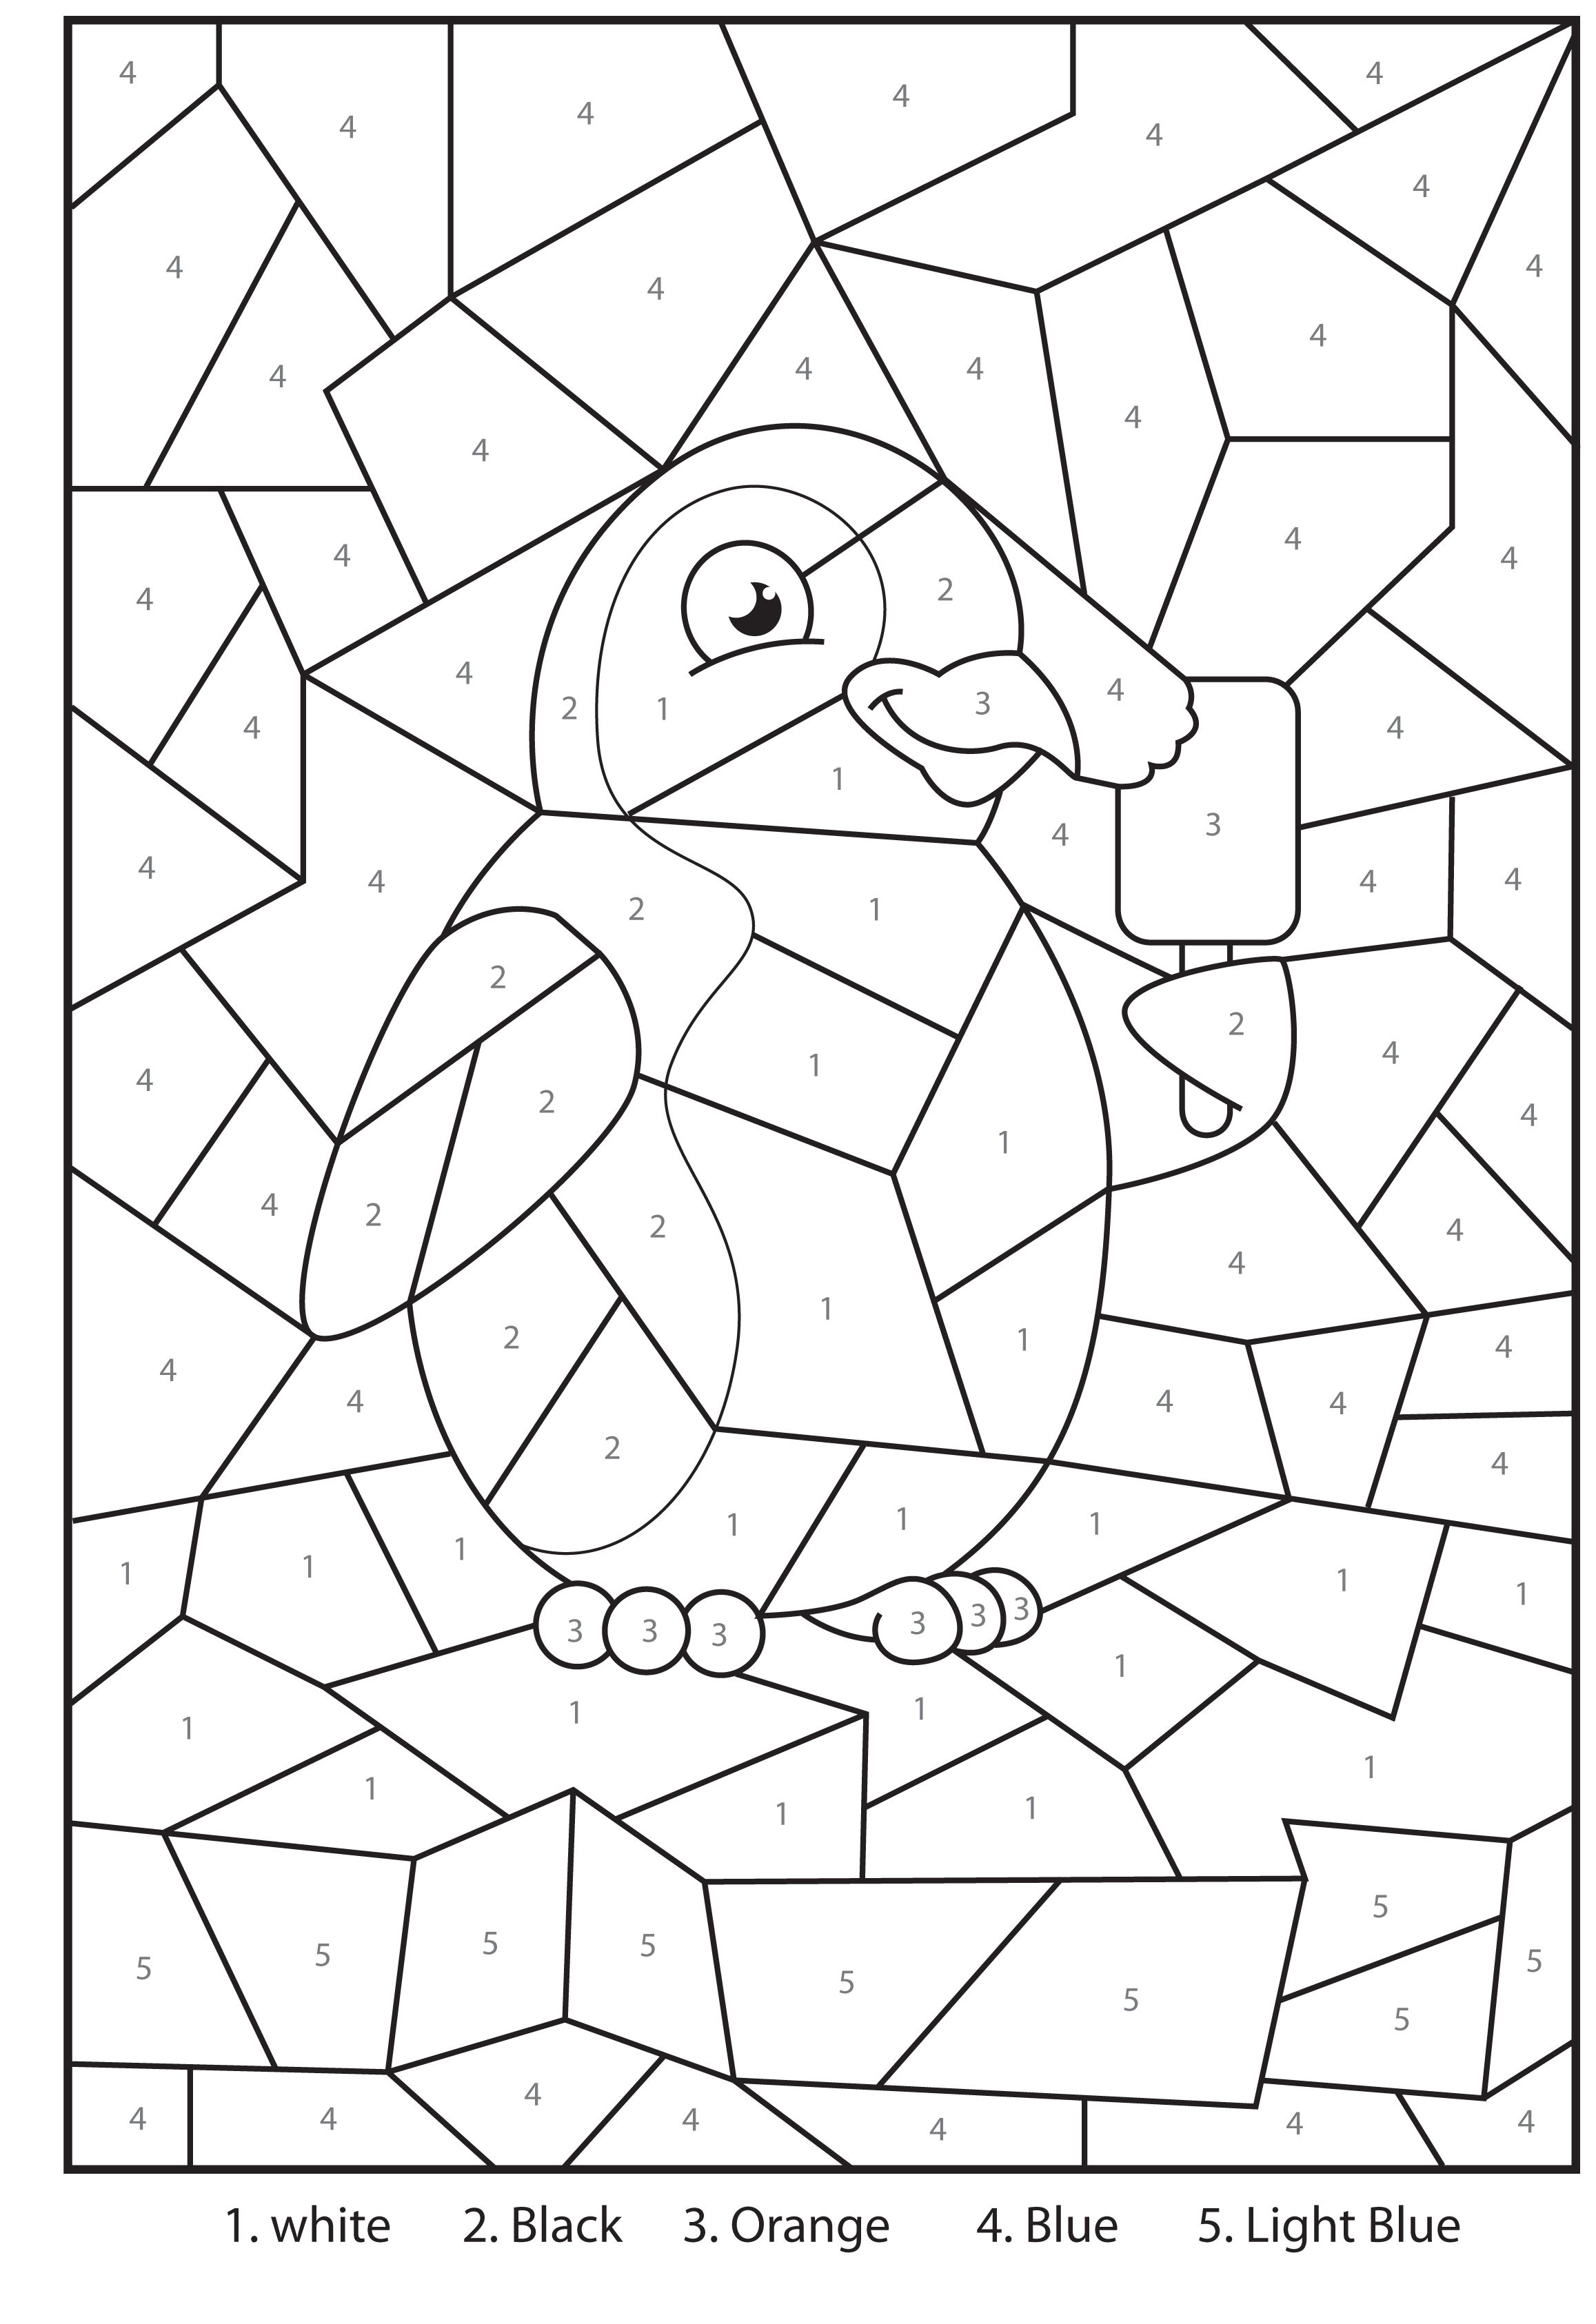 Coloring pages by numbers for kids - Free Printable Penguin At The Zoo Colour By Numbers Activity For Kids